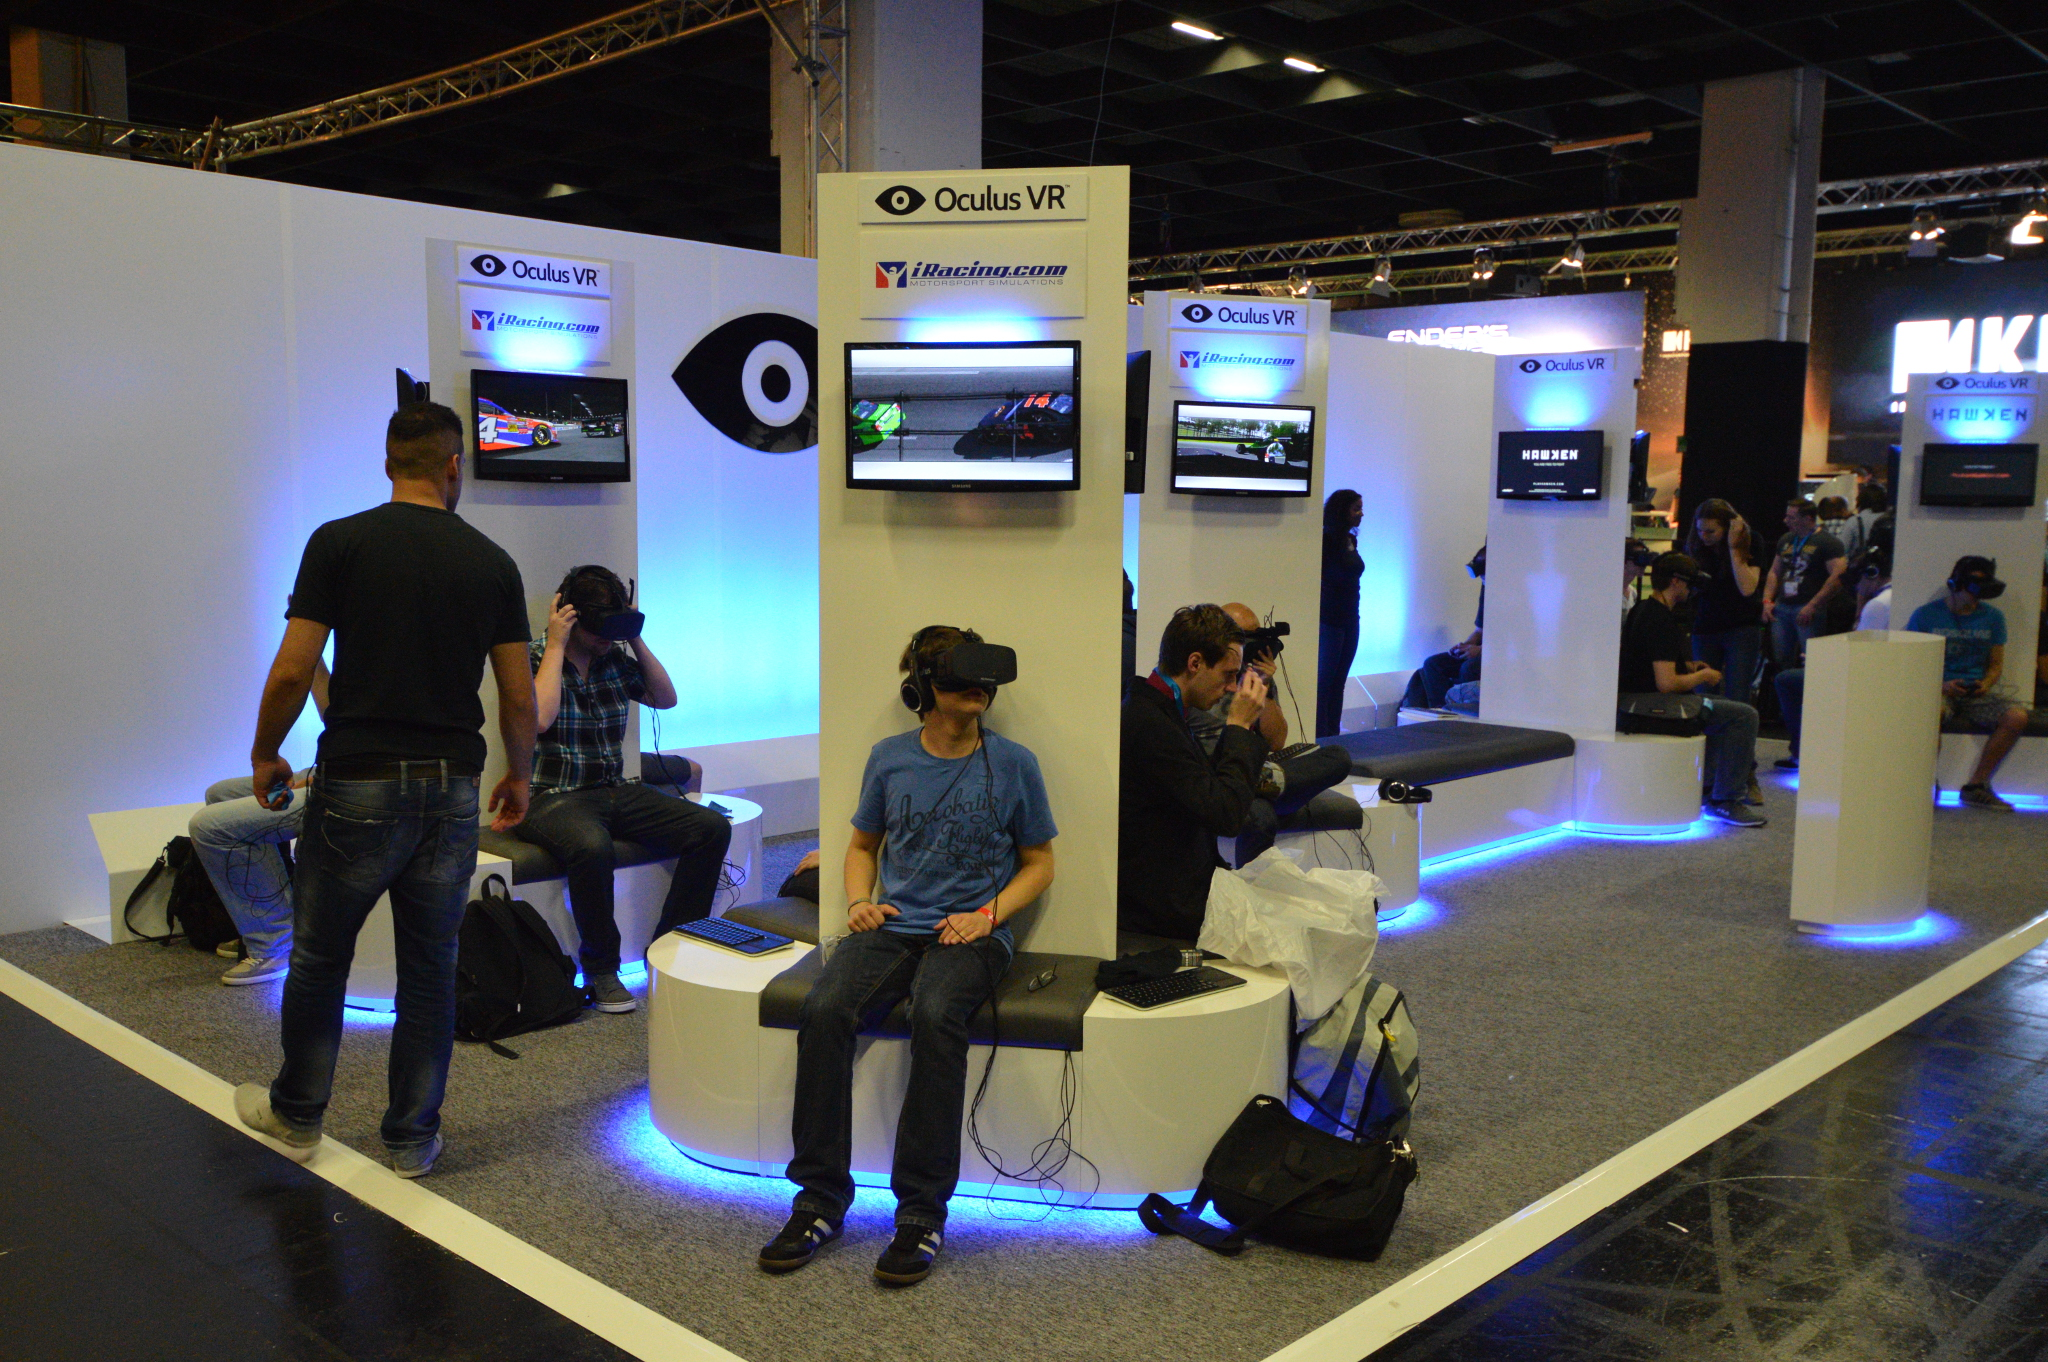 D Virtual Reality Exhibition : Round up simulation racers with oculus rift support